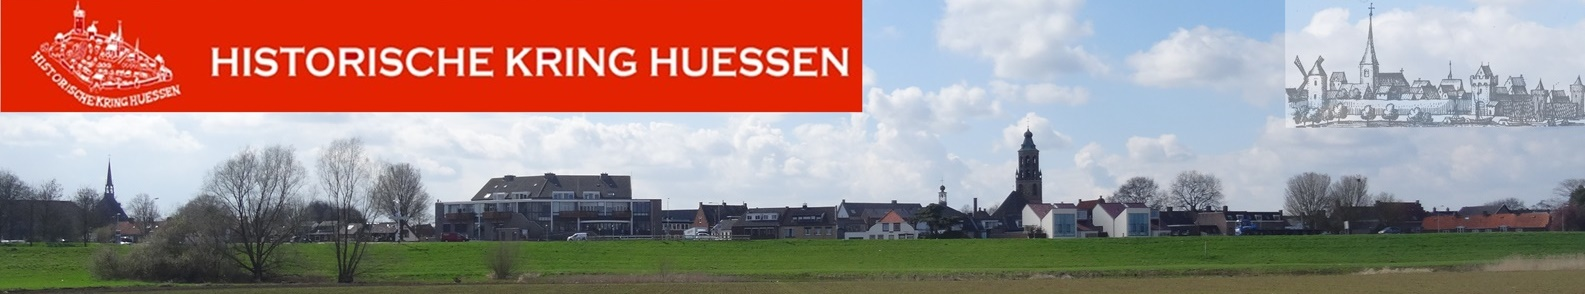 Historische Kring Huessen